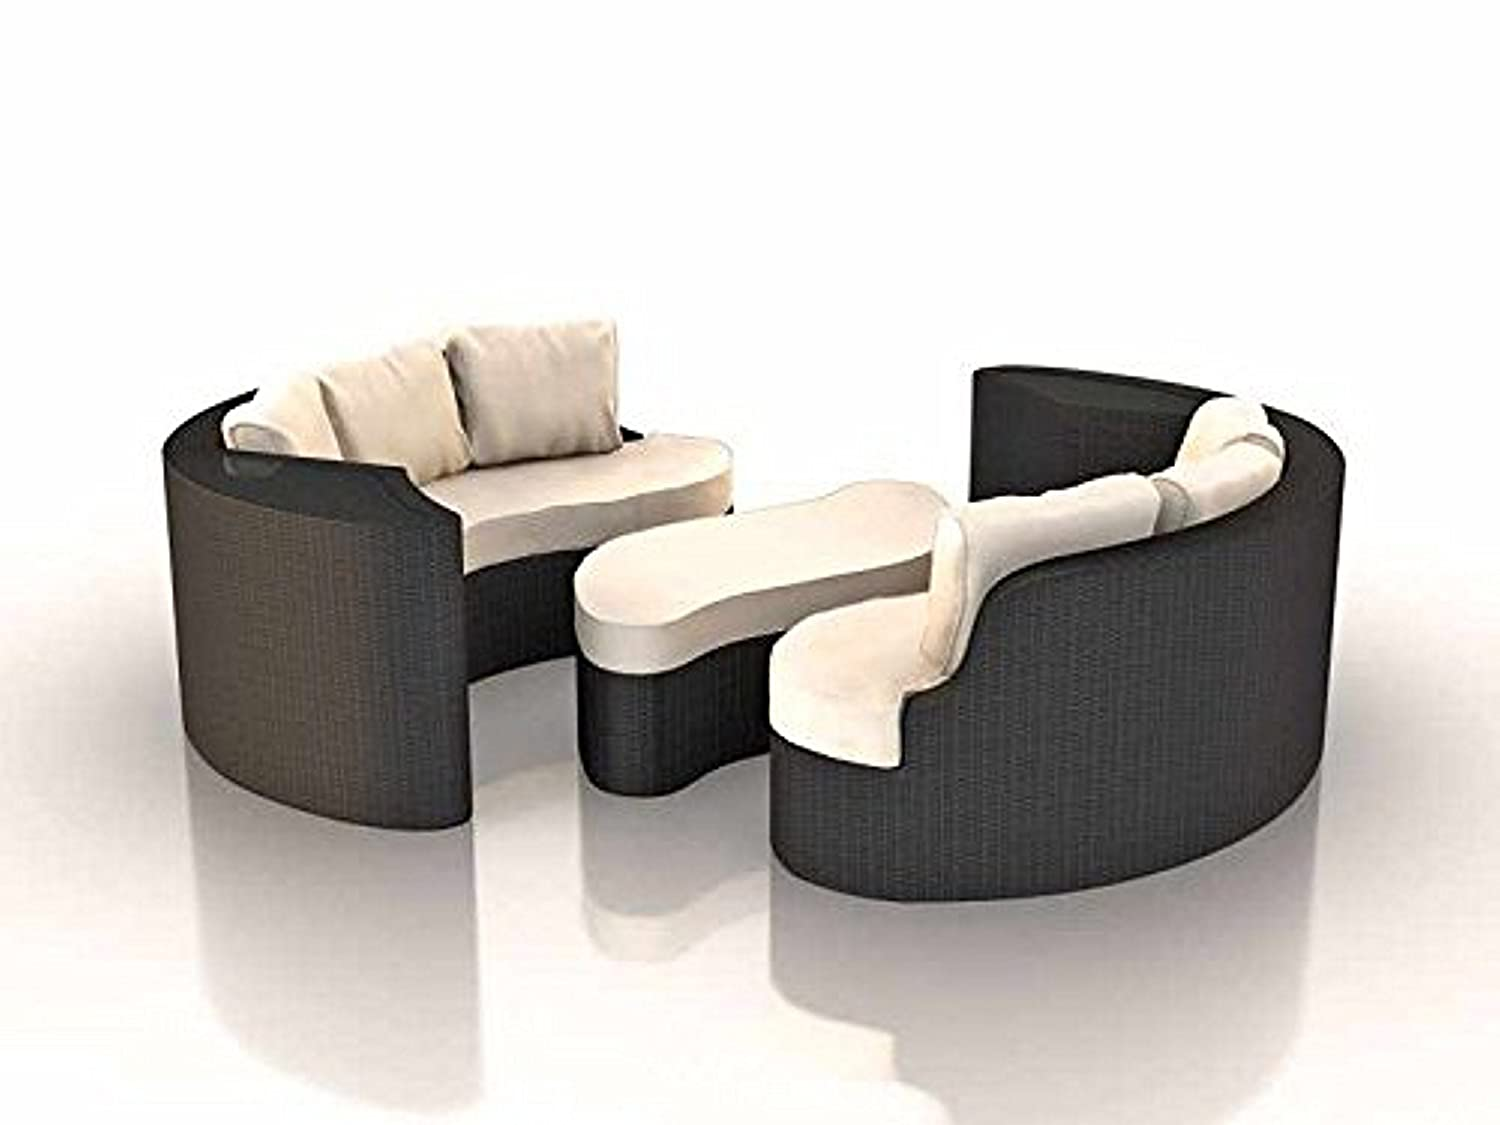 rattaninsel emmi grau lounge liegeinsel sofa garnitur sitzecke sitzgruppe tisch bank stuhl insel. Black Bedroom Furniture Sets. Home Design Ideas